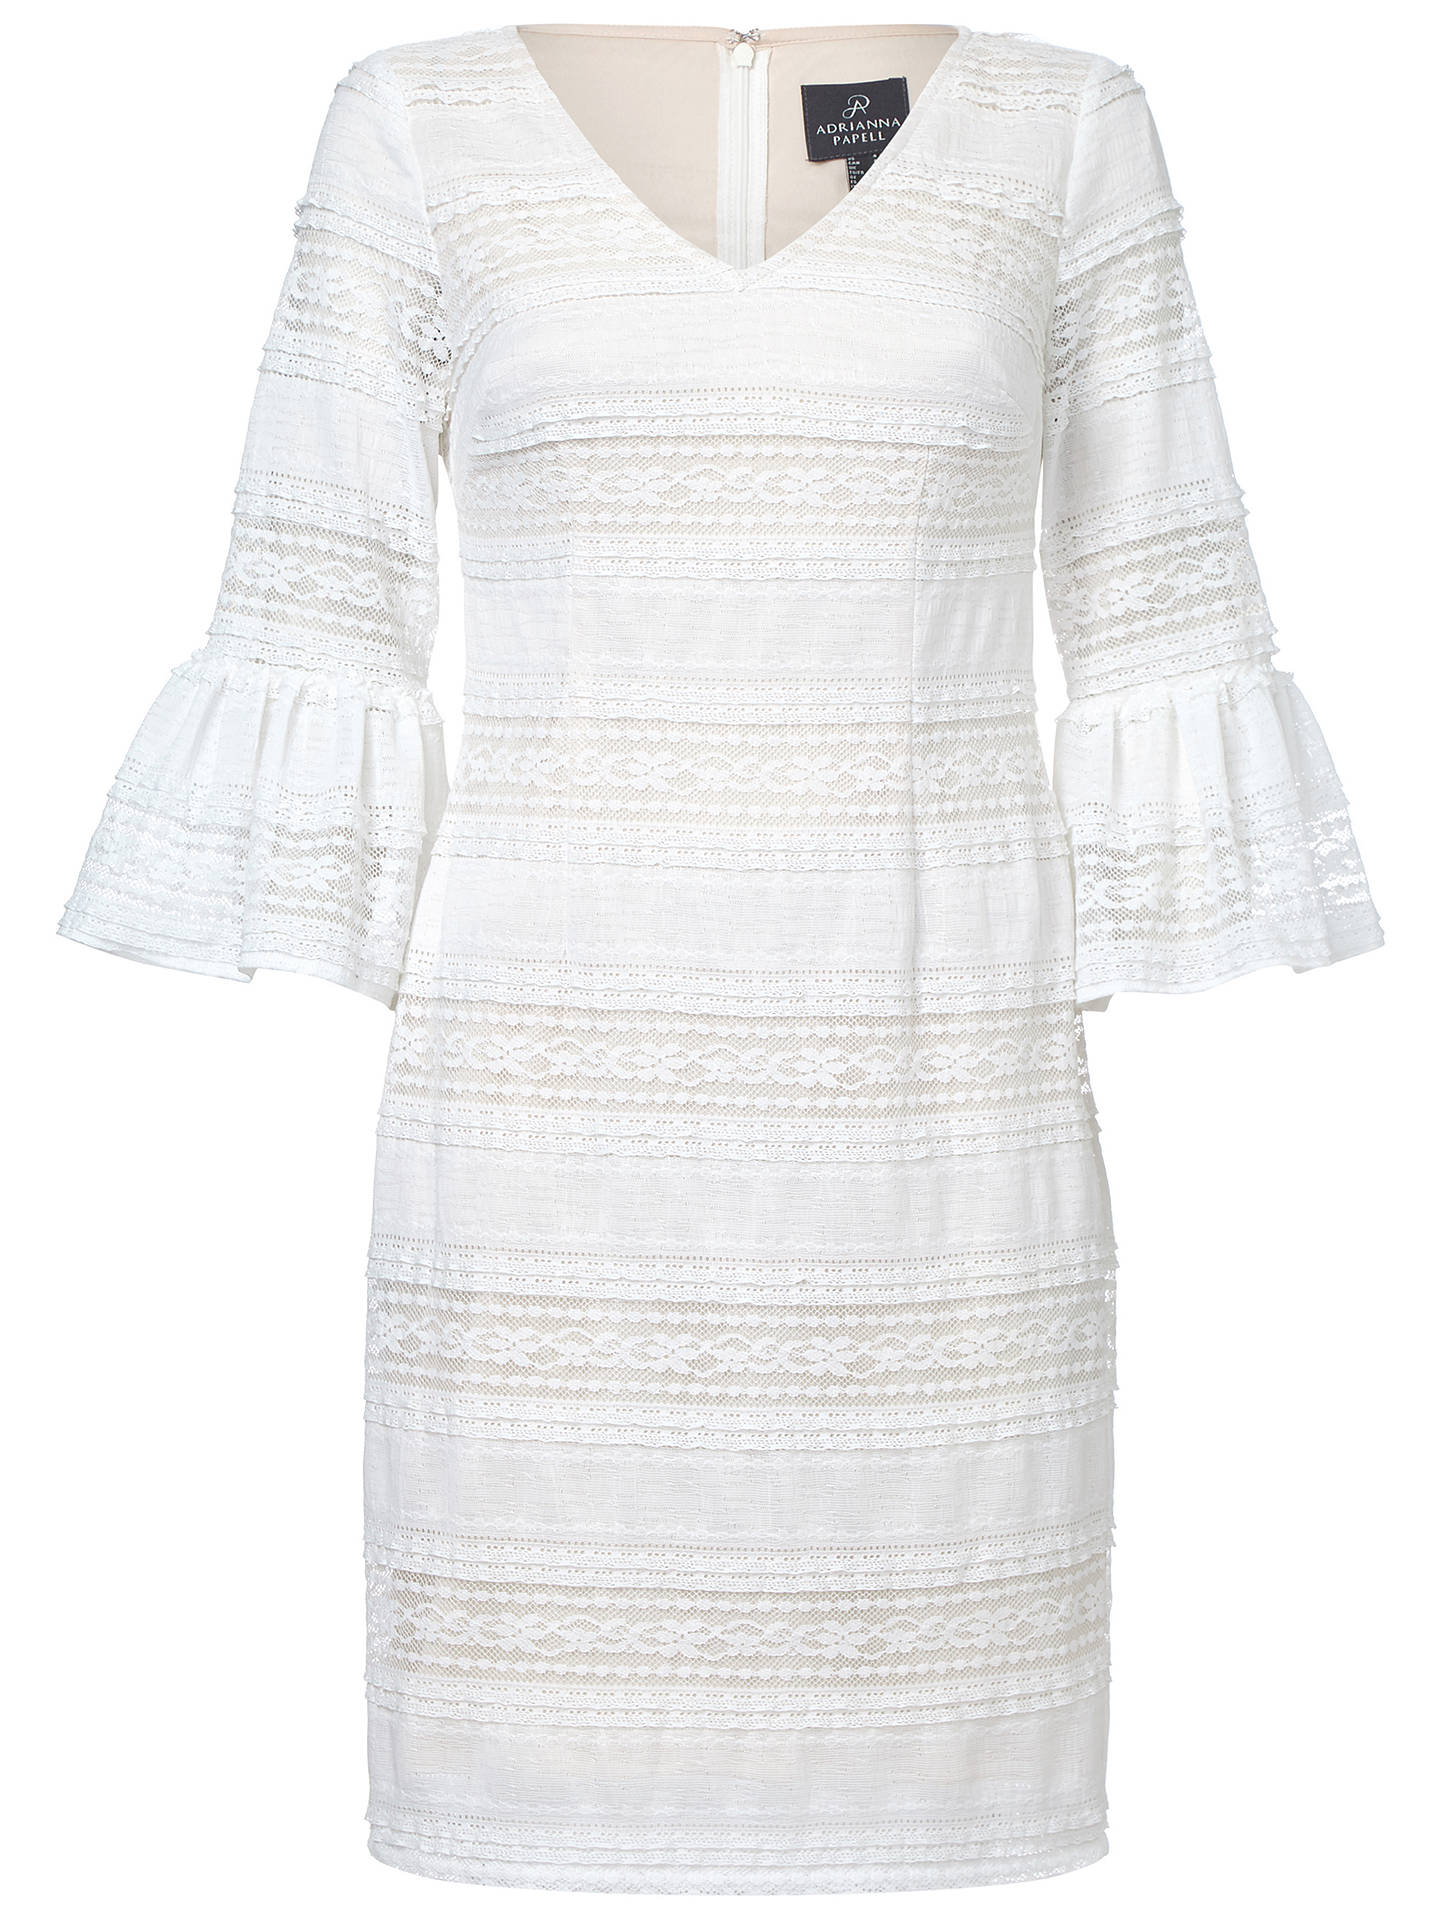 Buy Adrianna Papell Ava Lace Bell Sleeve Dress, Ivory/Powder, 8 Online at johnlewis.com